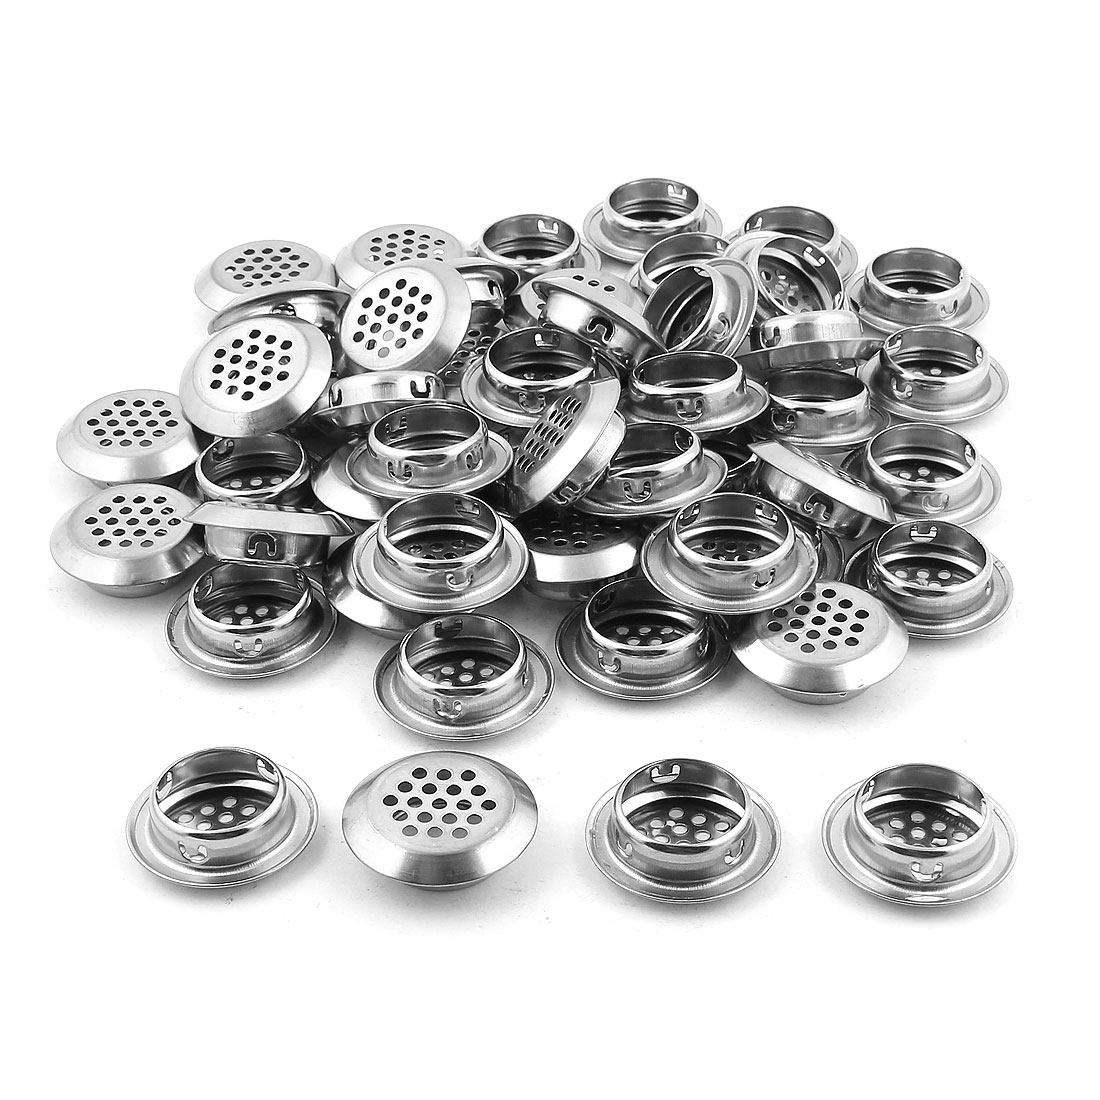 Shoes Cabinet Louver 29mm Bottom Dia Round Panel Air Vent Cover Silver Tone 50PCS